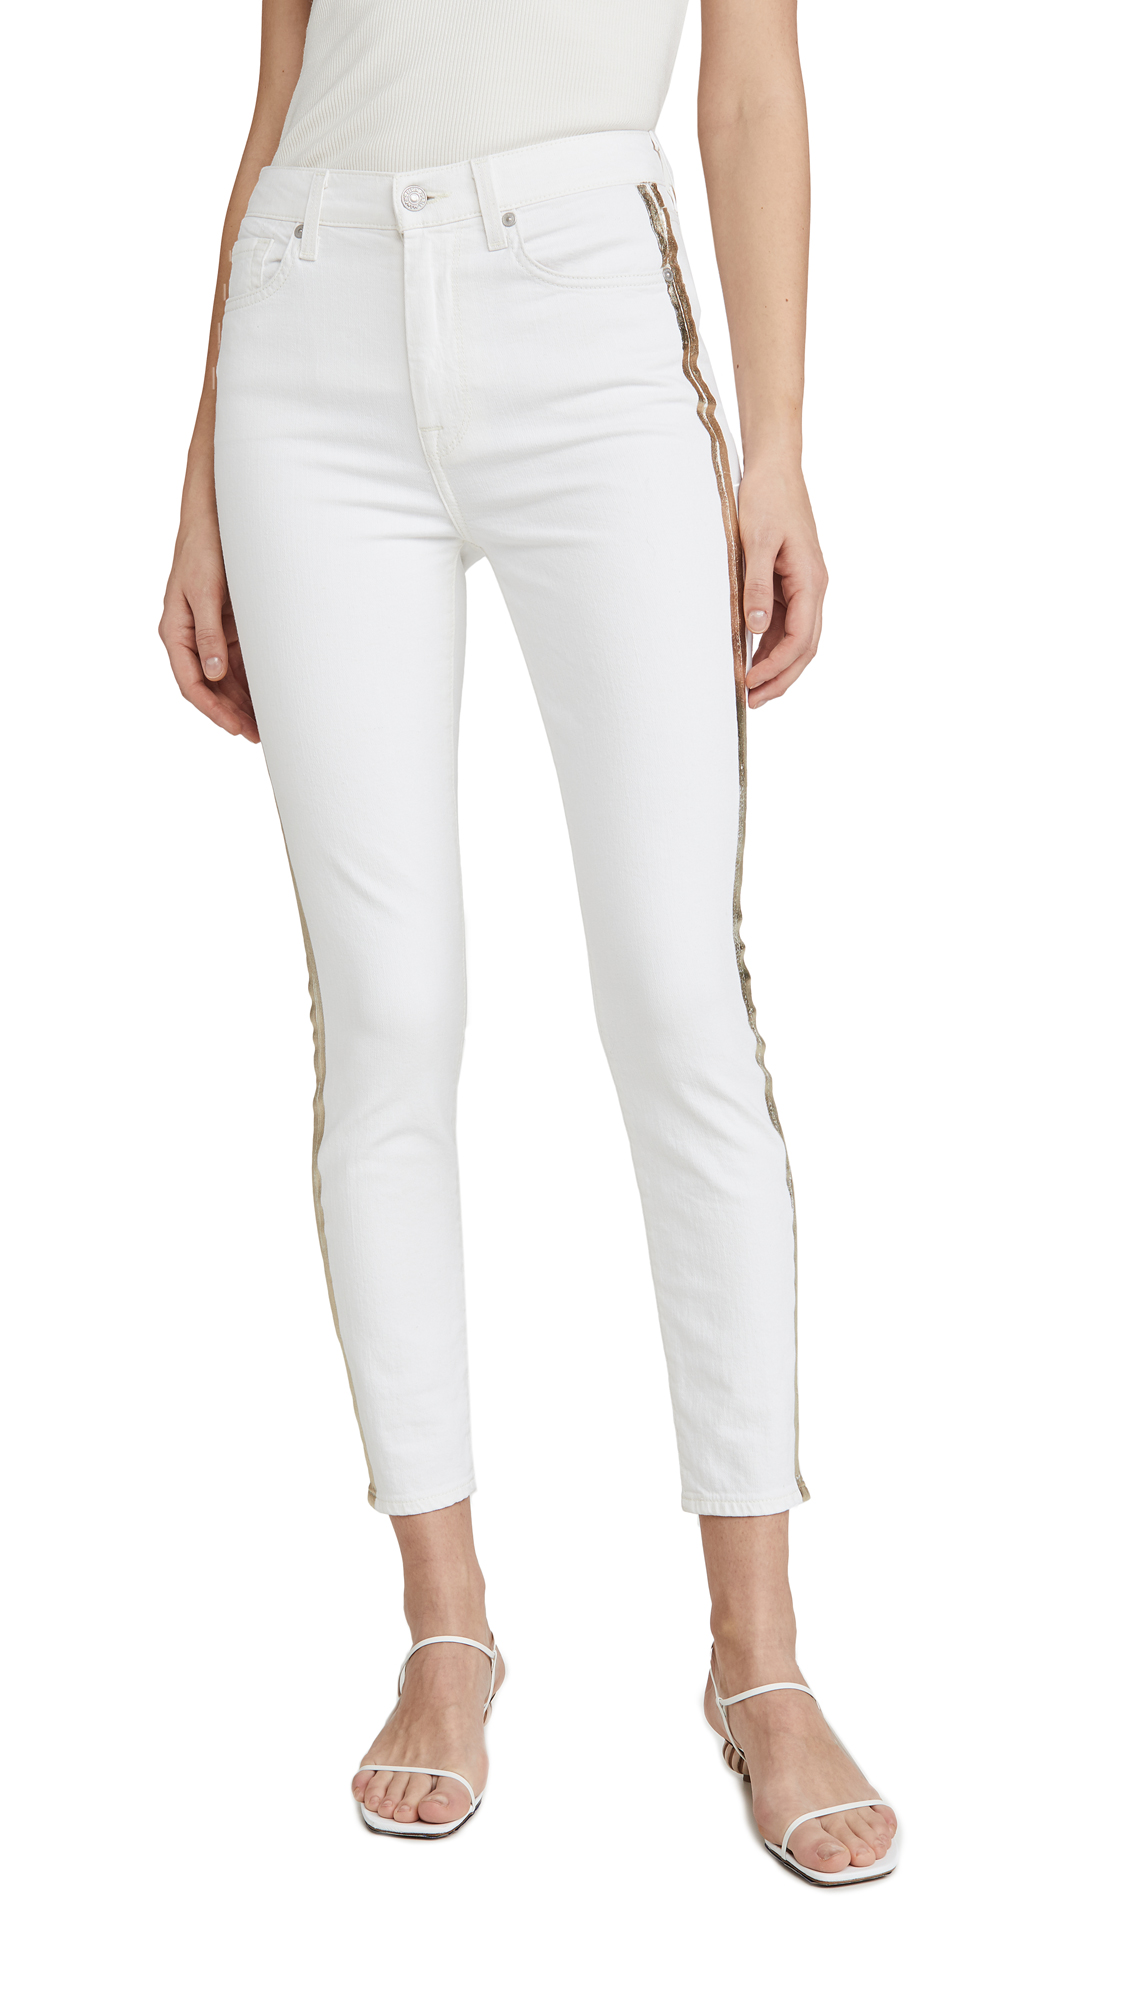 7 For All Mankind Jeans HIGH WAIST ANKLE SKINNY JEANS